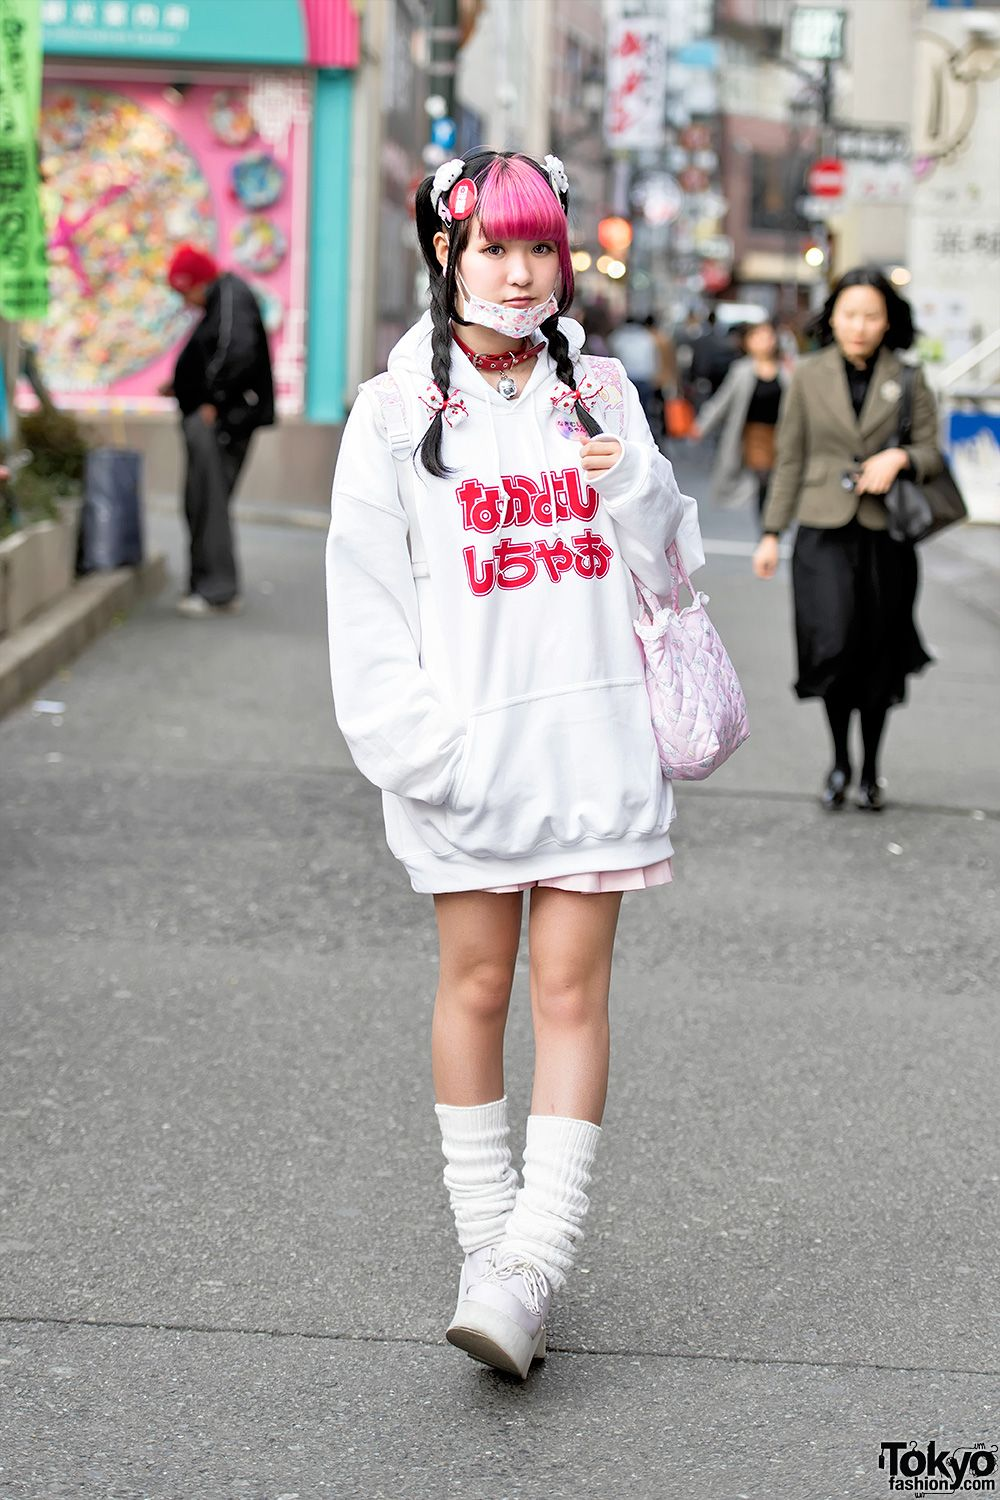 Oversized Hoodies Girls Tumblr Buscar Con Google Coolhunting Pinterest Harajuku Girls